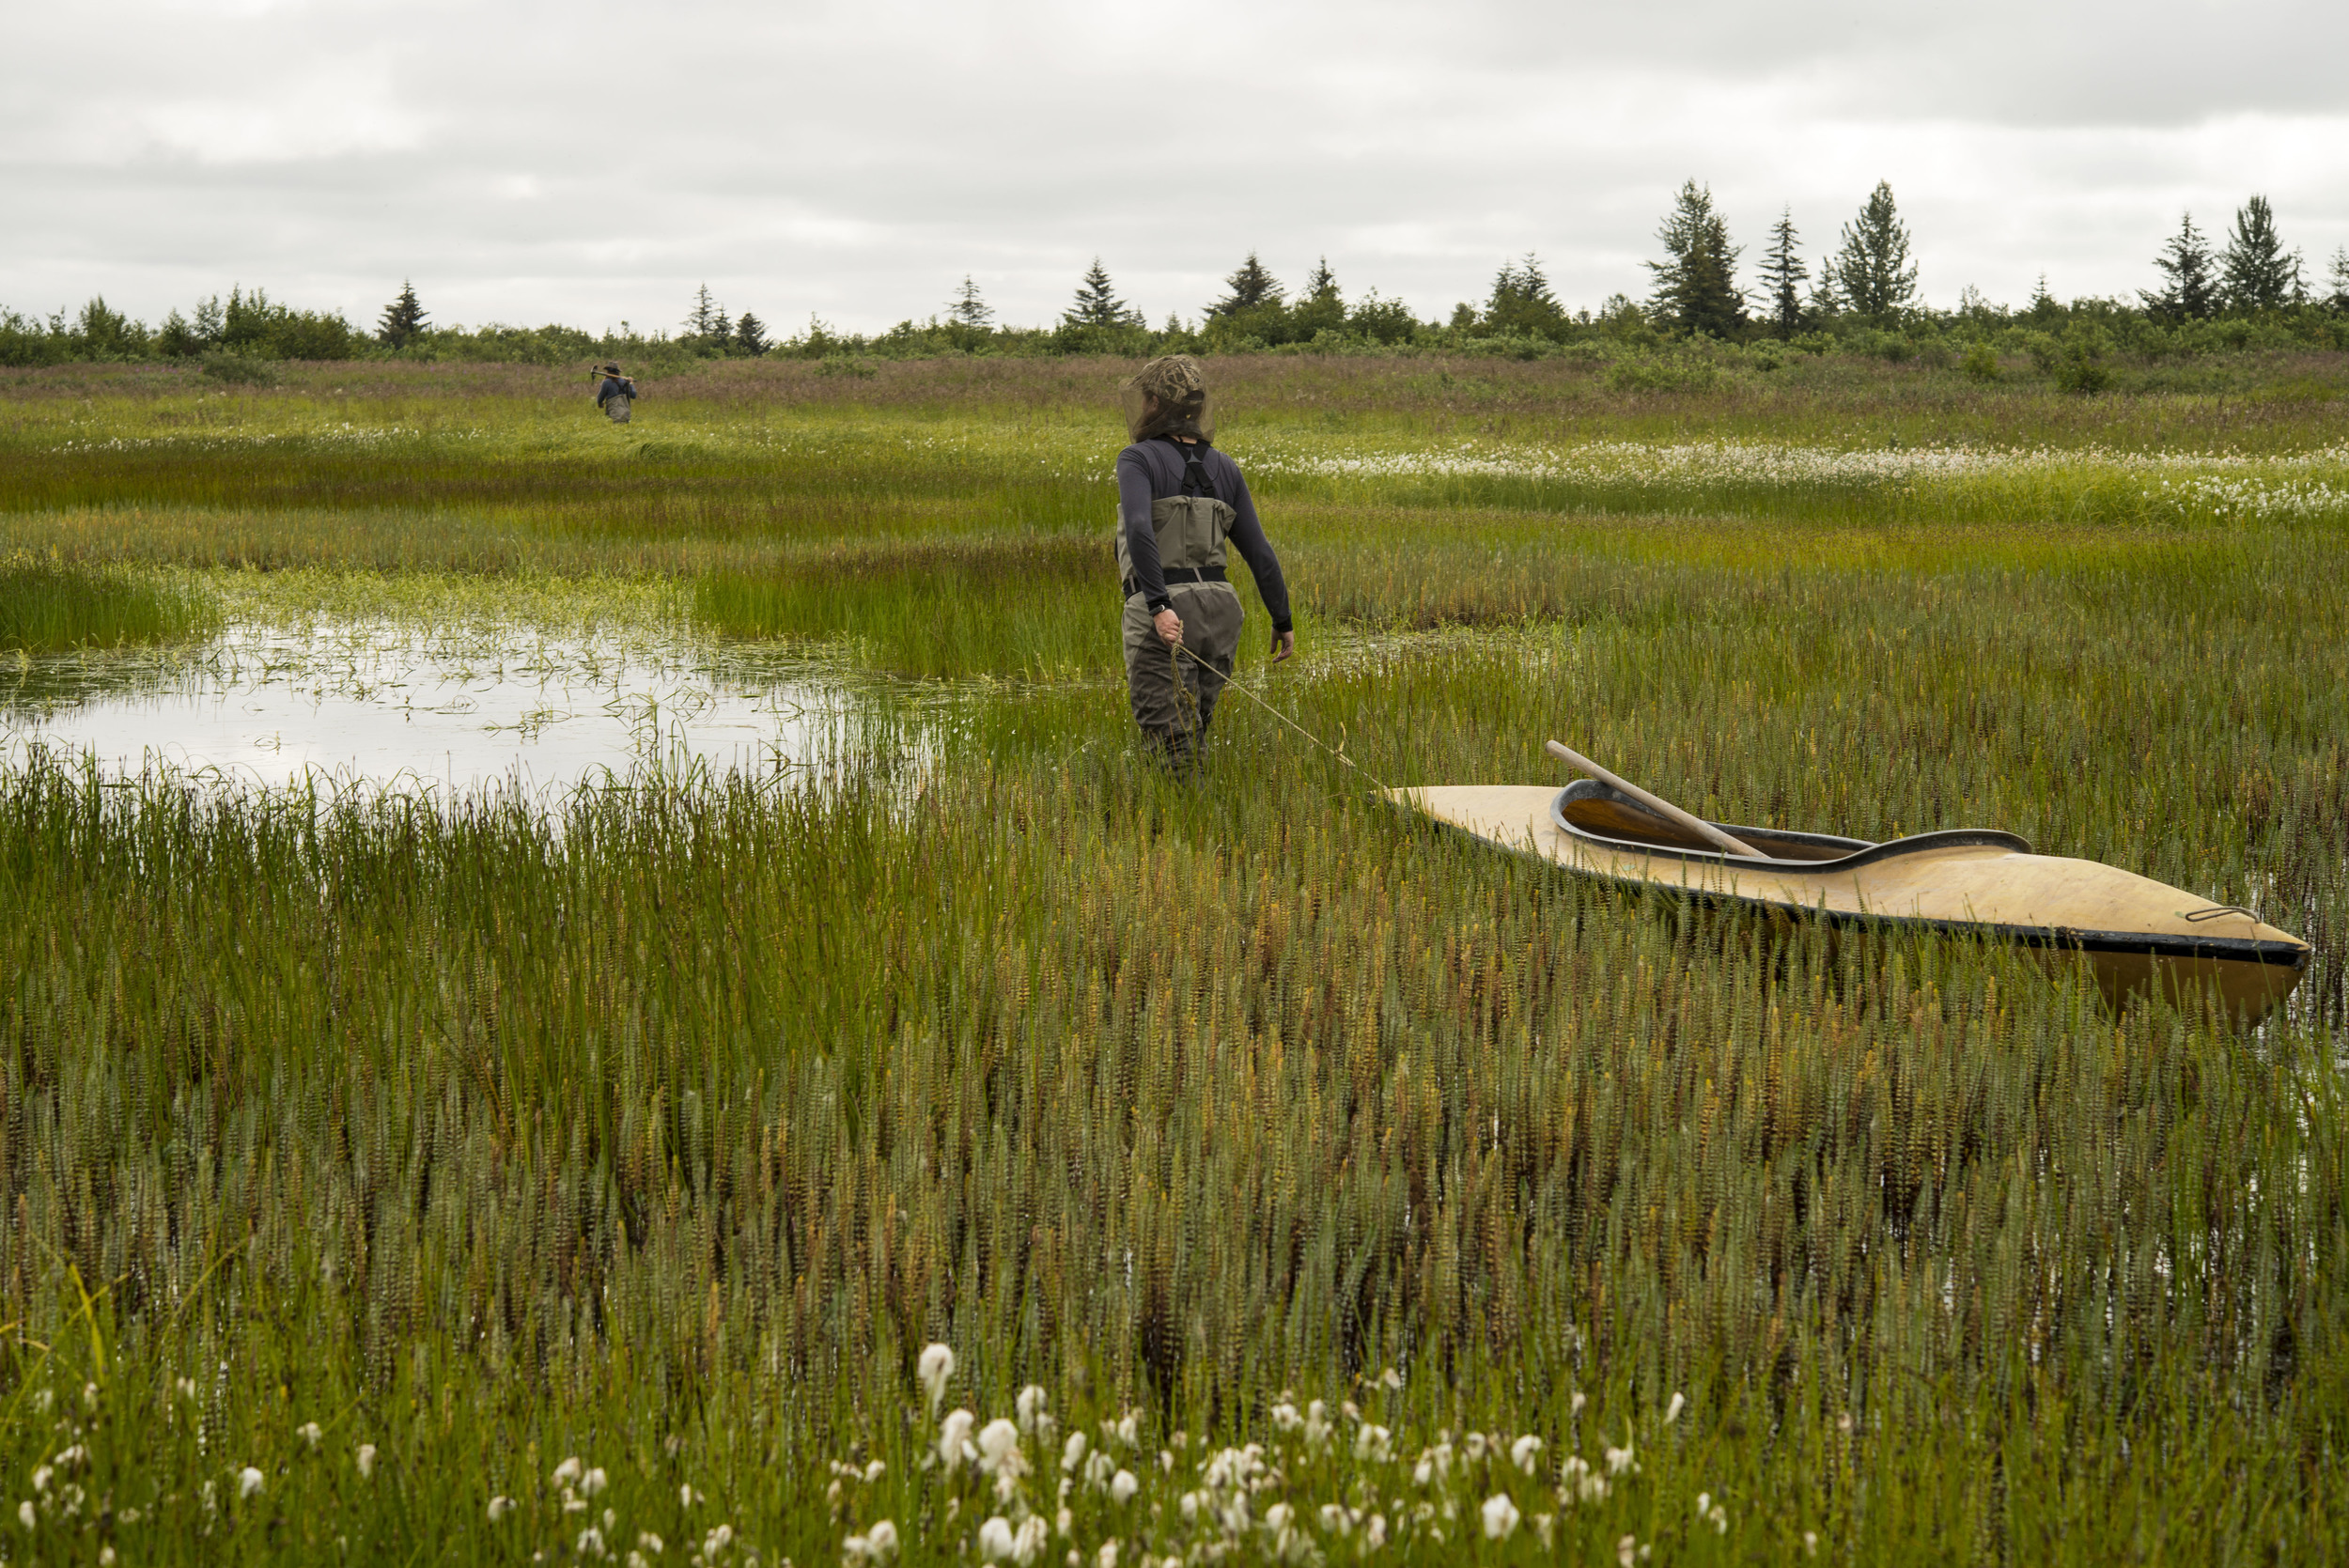 Melissa Gabrielson drags her poke boat behind her toward the next nest island on her list. The crew uses poke boats to carry shovels and maintenance tools through brush and paddles across ponds, sloughs and beaver dams to reach the artificial islands.